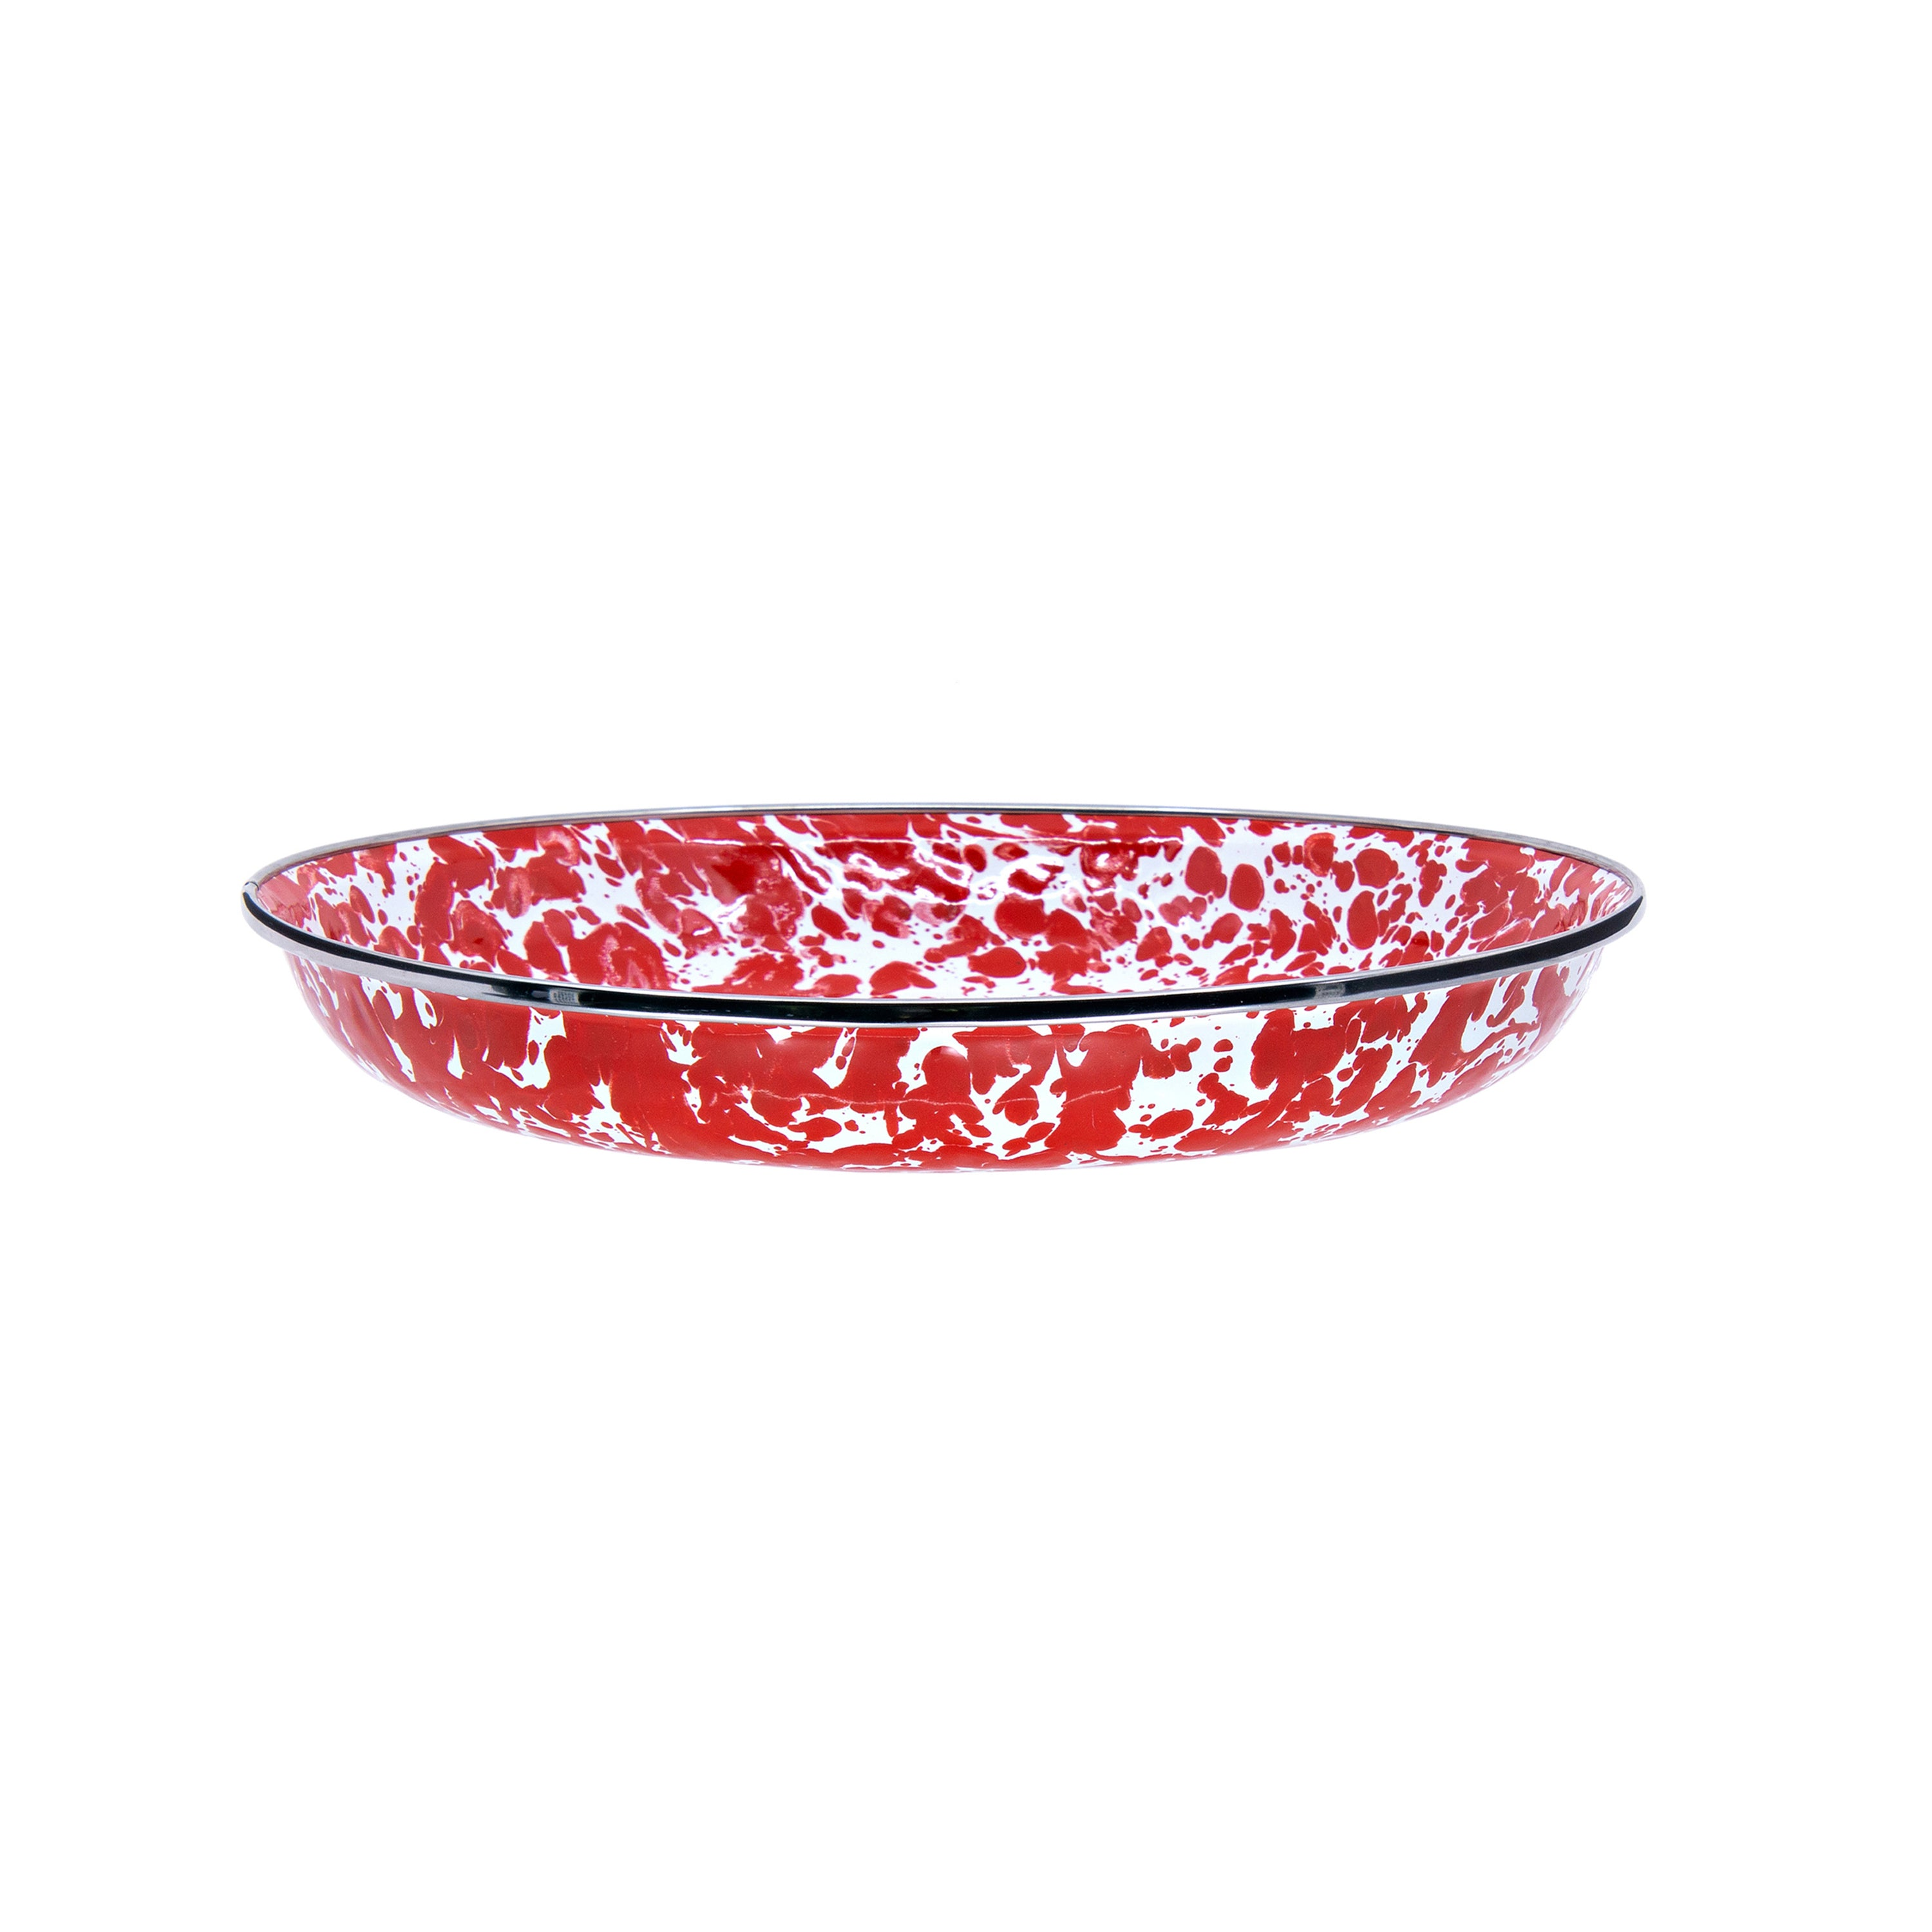 RD04S4 - Set of 4 Red Swirl Pasta Plates Image 2